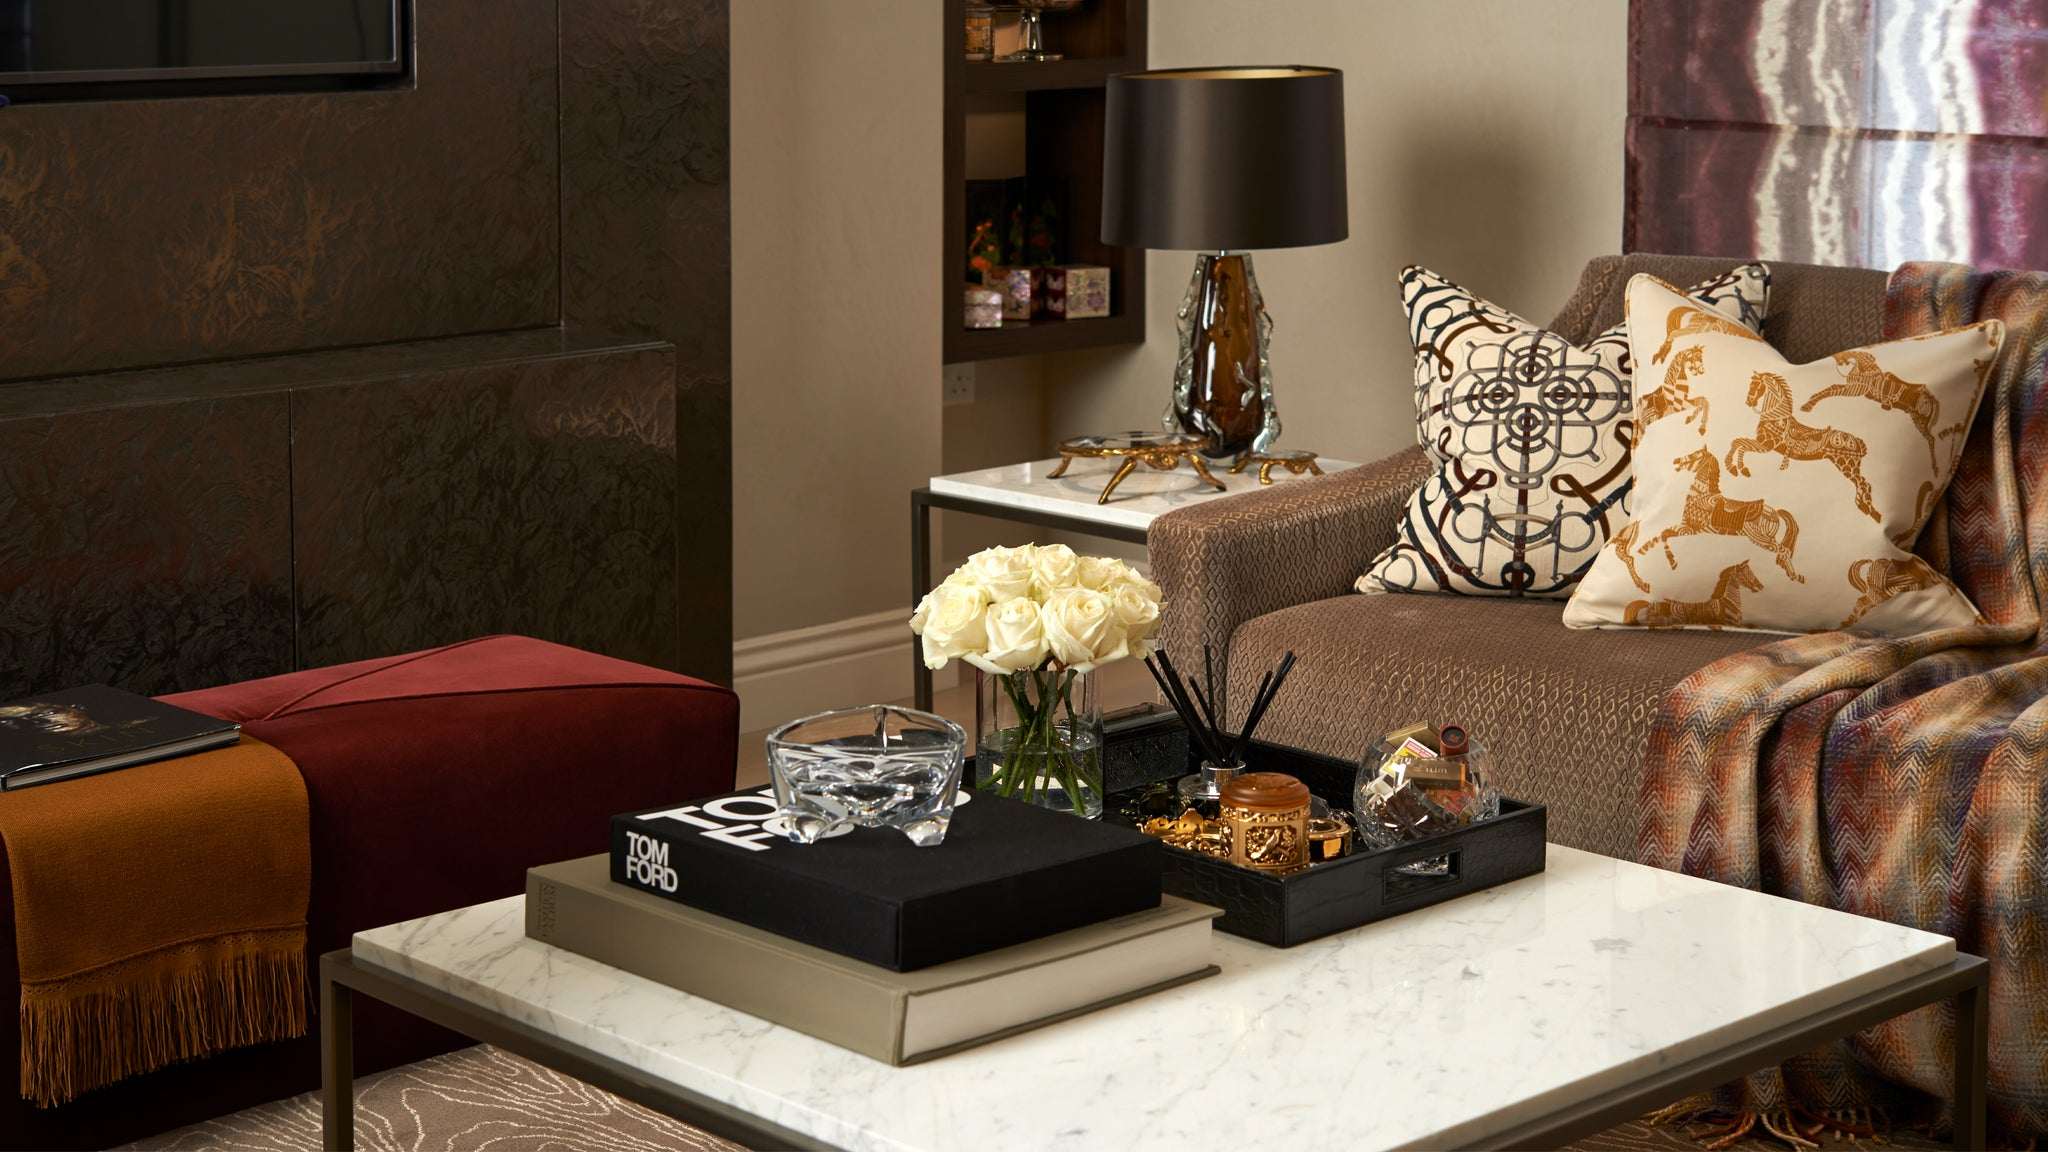 Residential Interior Design | Living Room Design | Ottoman and Sofa Detail | Marble Arch Apartment | 5mm Design London